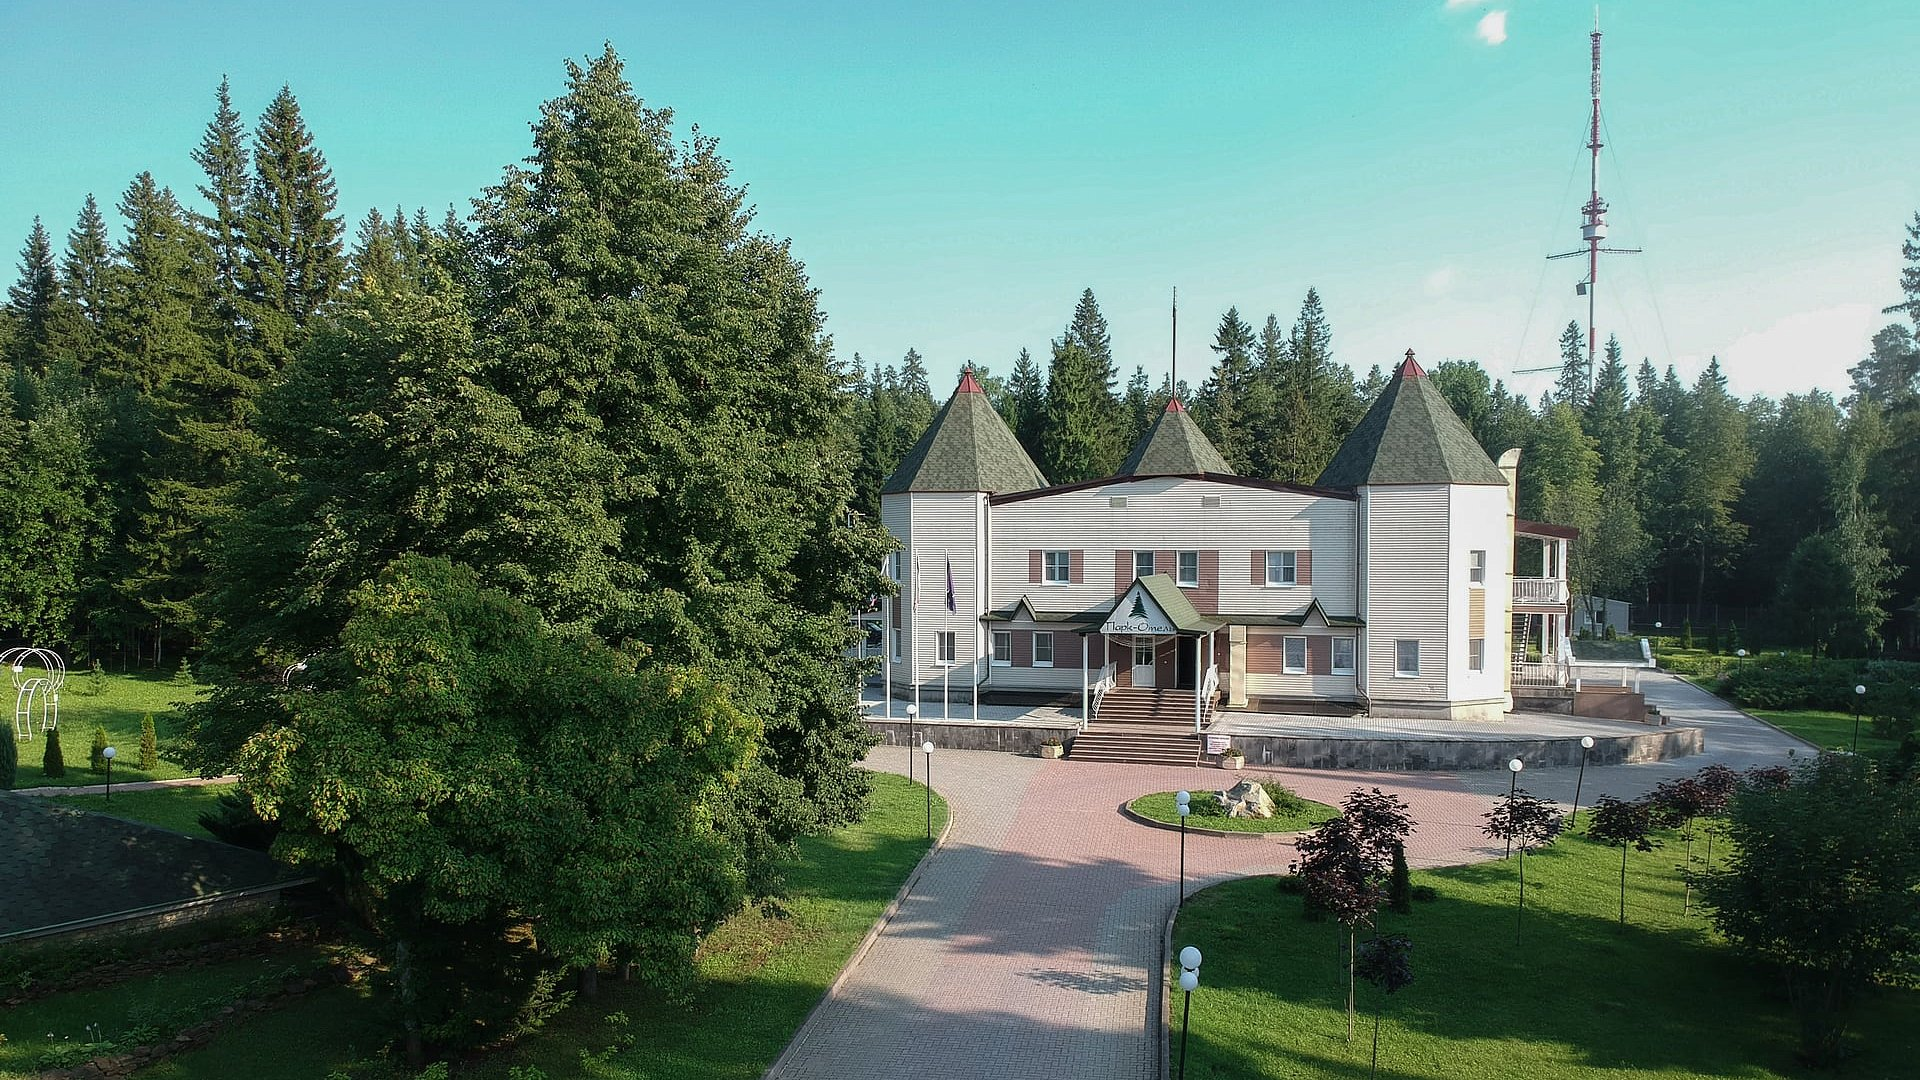 Hotel with its own park, 15 minutes from the center of Izhevsk